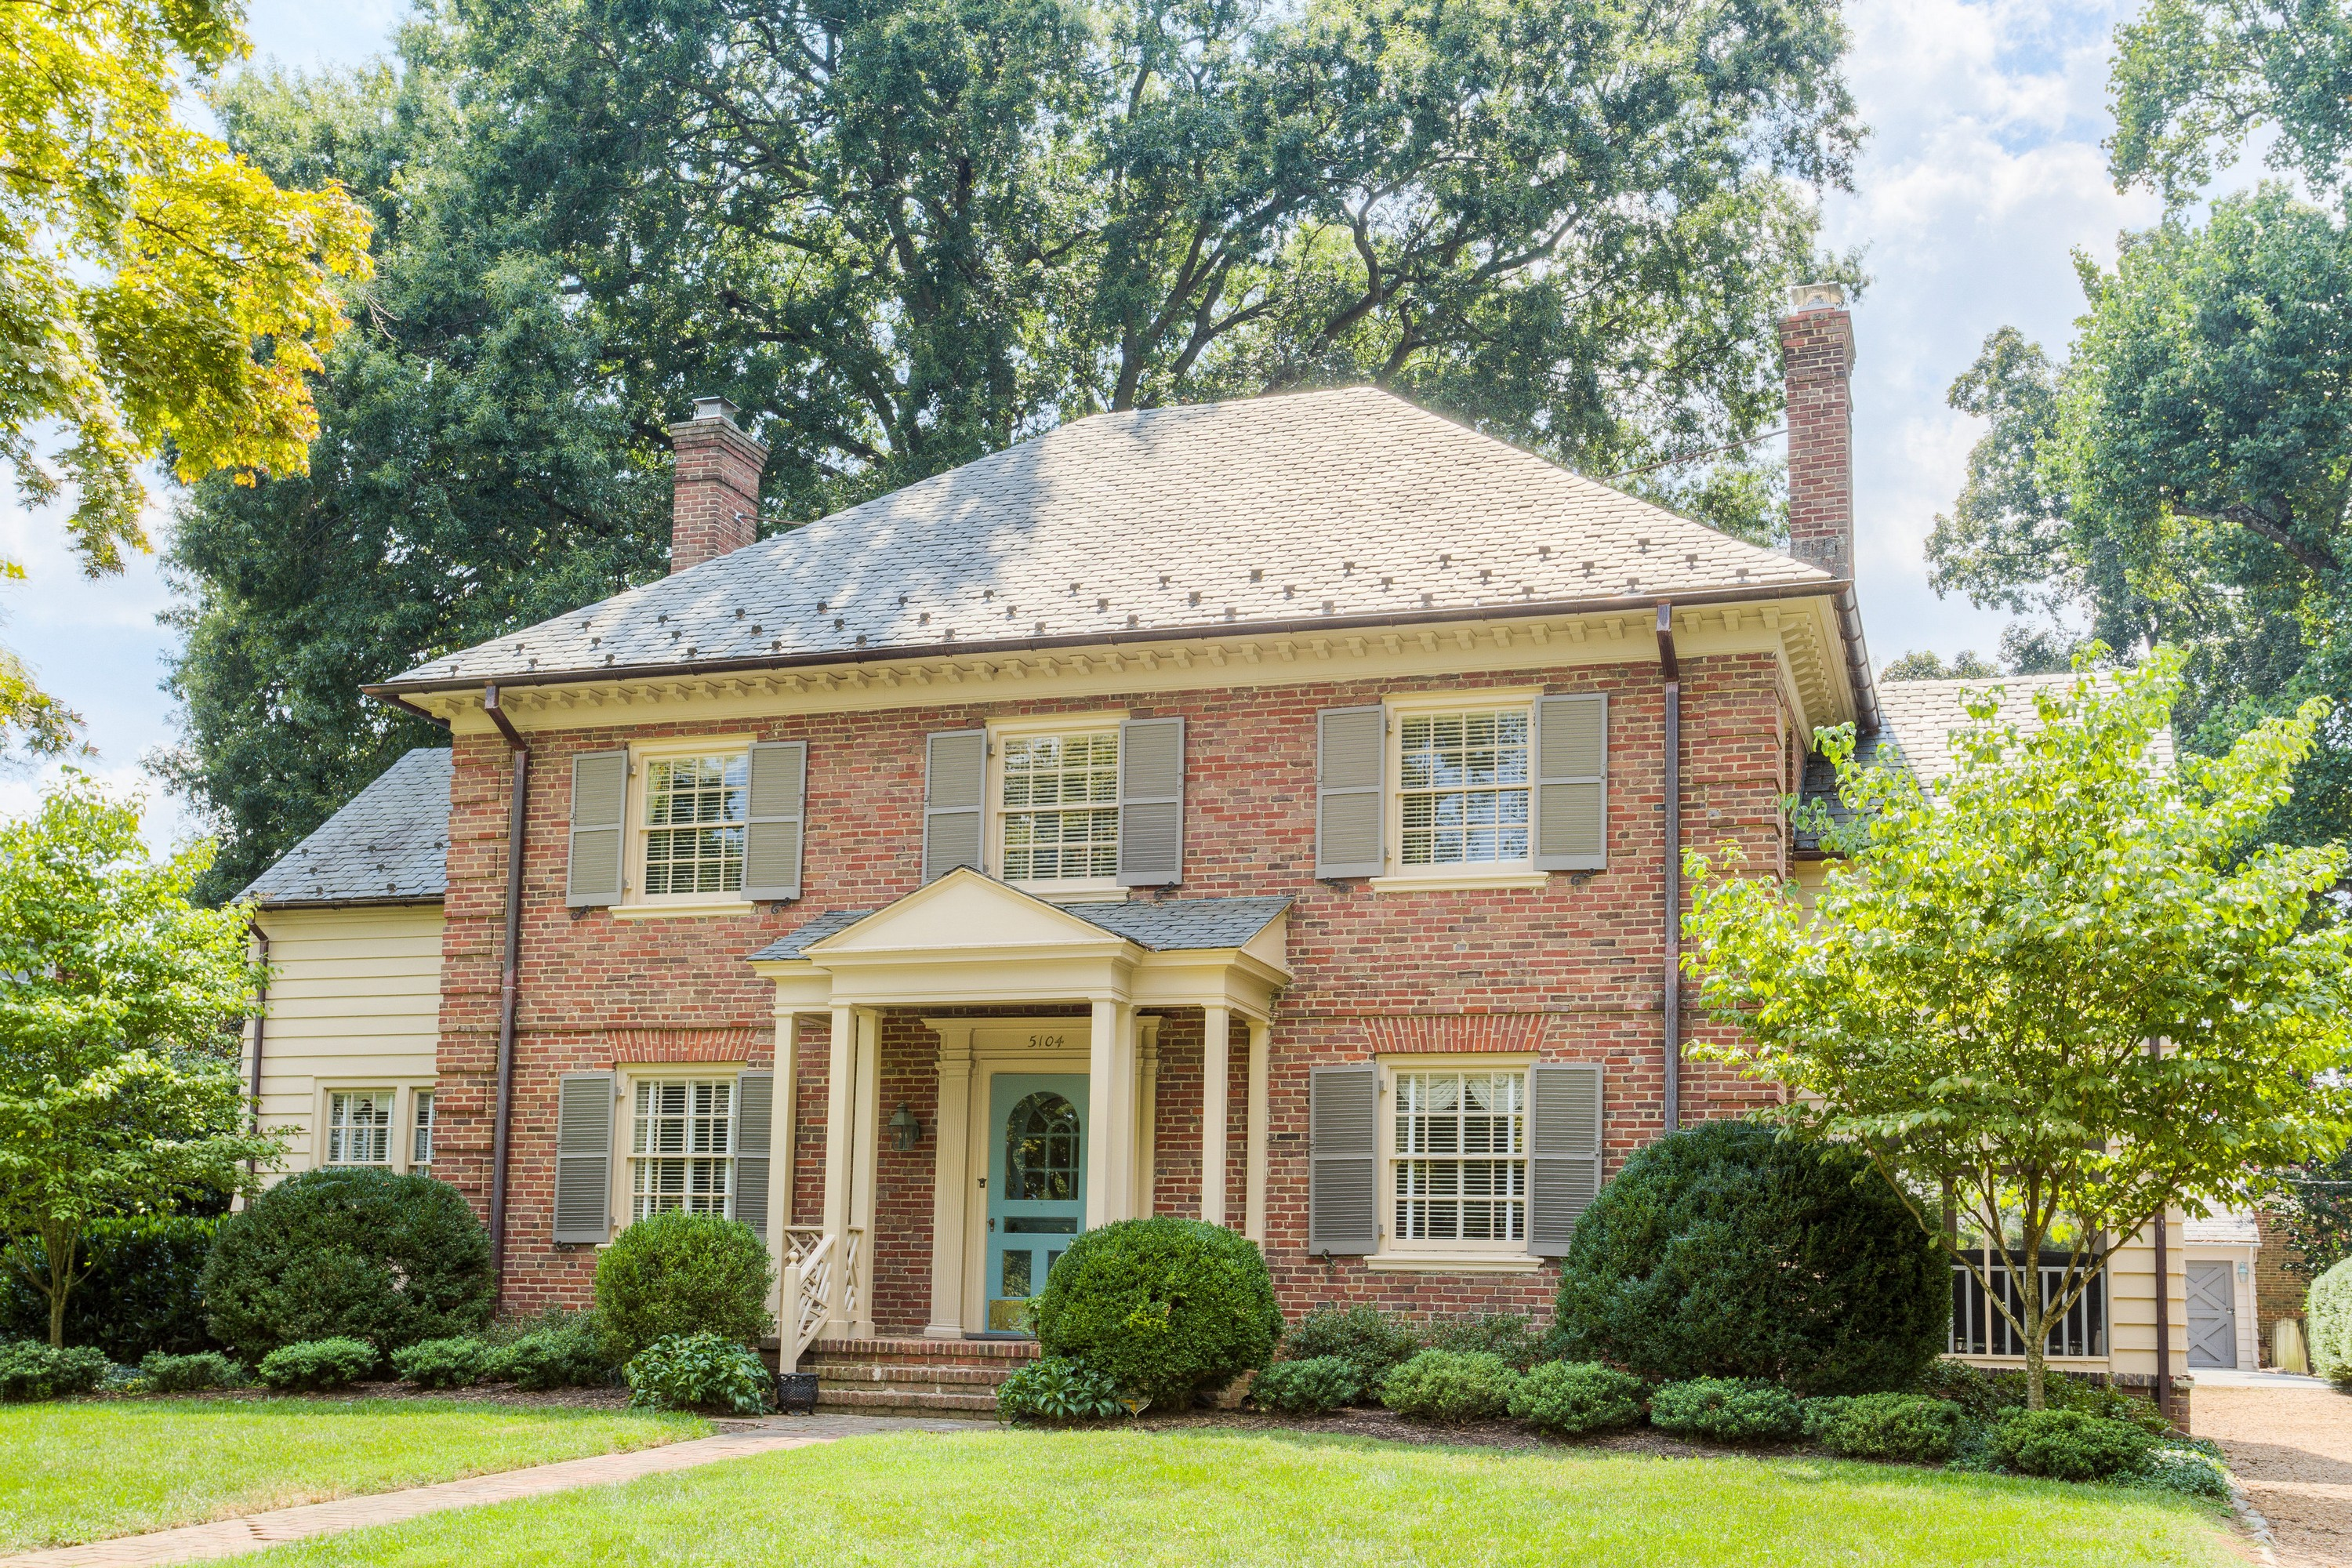 Single Family Home for Sale at 5104 Riverside Drive Westover Hills, Richmond, Virginia, 23225 United States